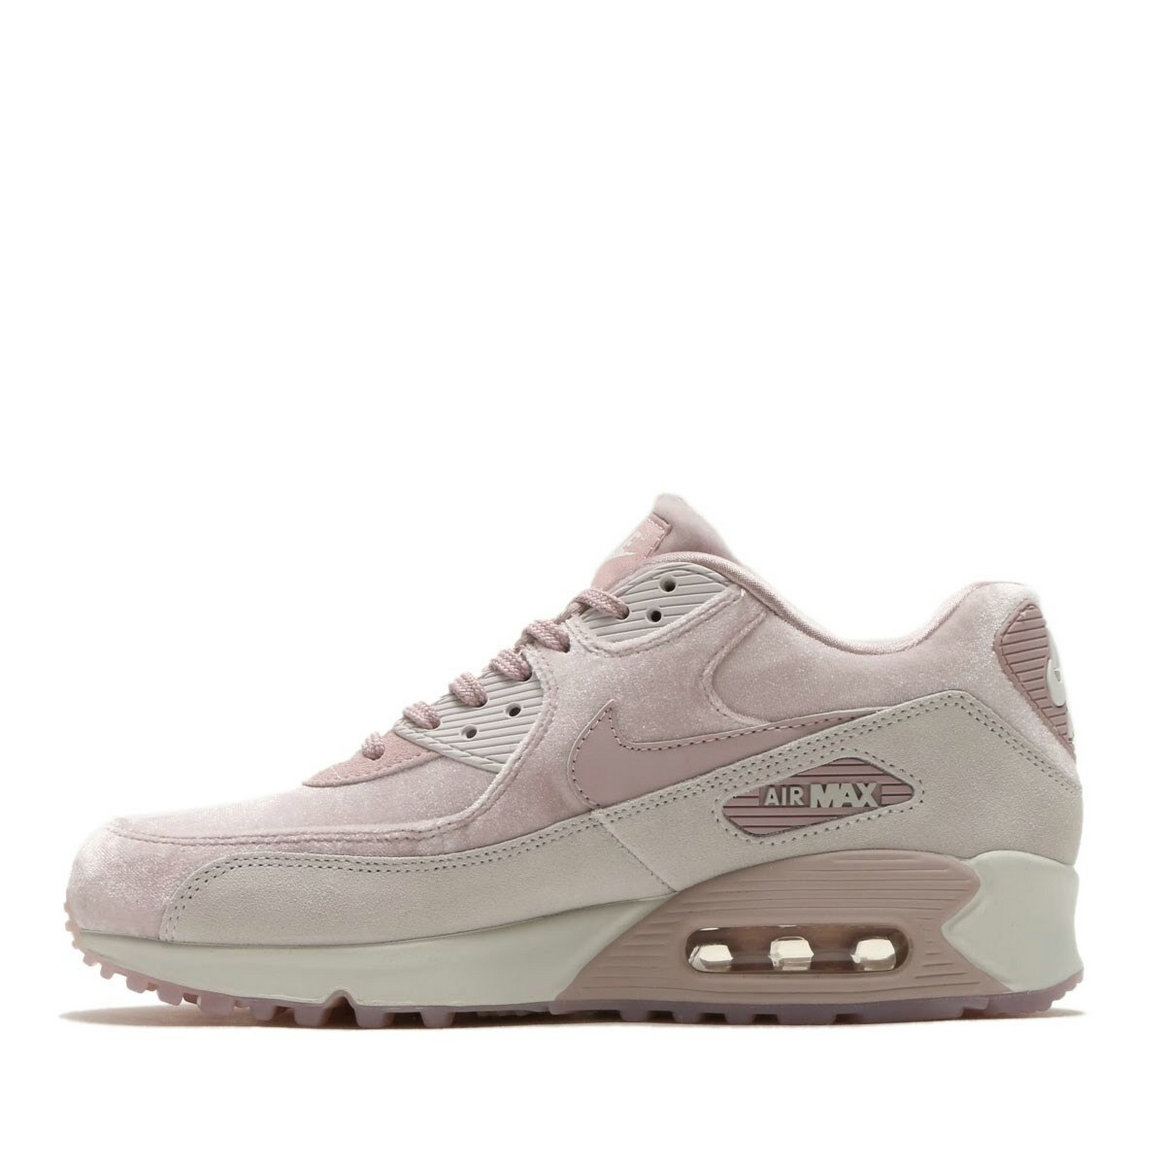 2020 Womens Cheap Nike Air Max 90 Lx Particle Rose Particle Rose-Vast Grey 898512-600